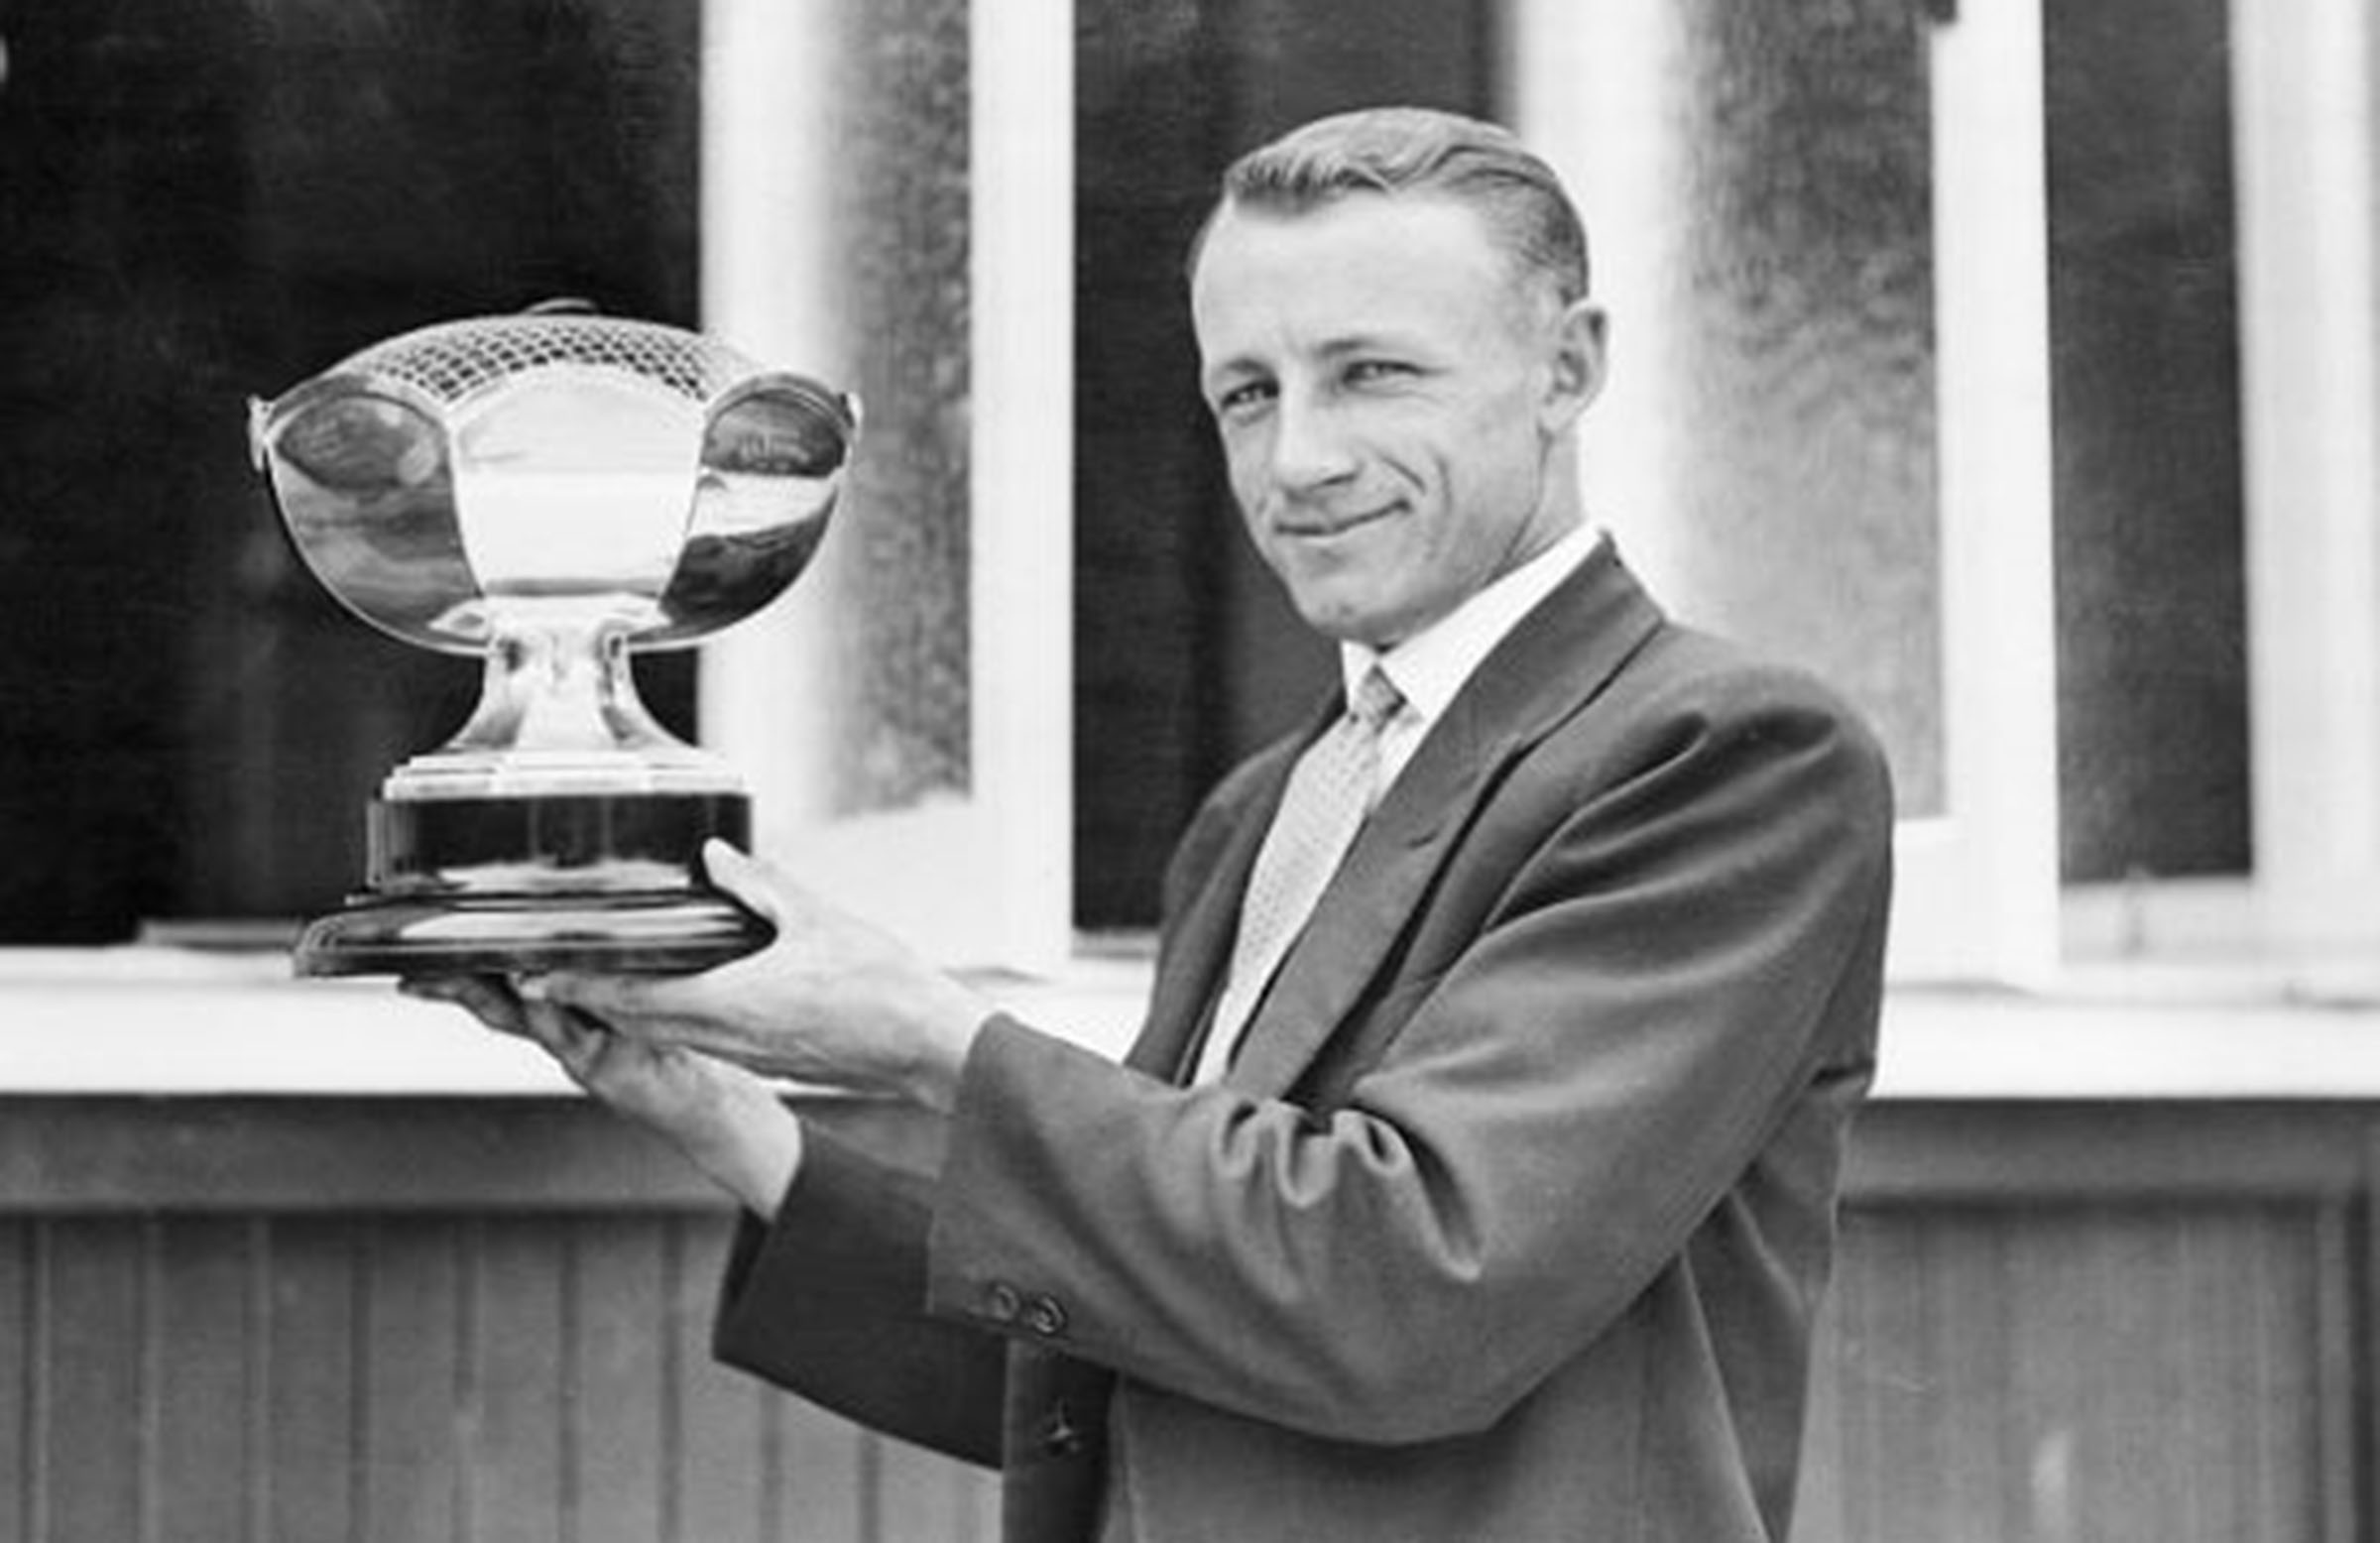 A young Bradman after claiming the world record Test score // Getty